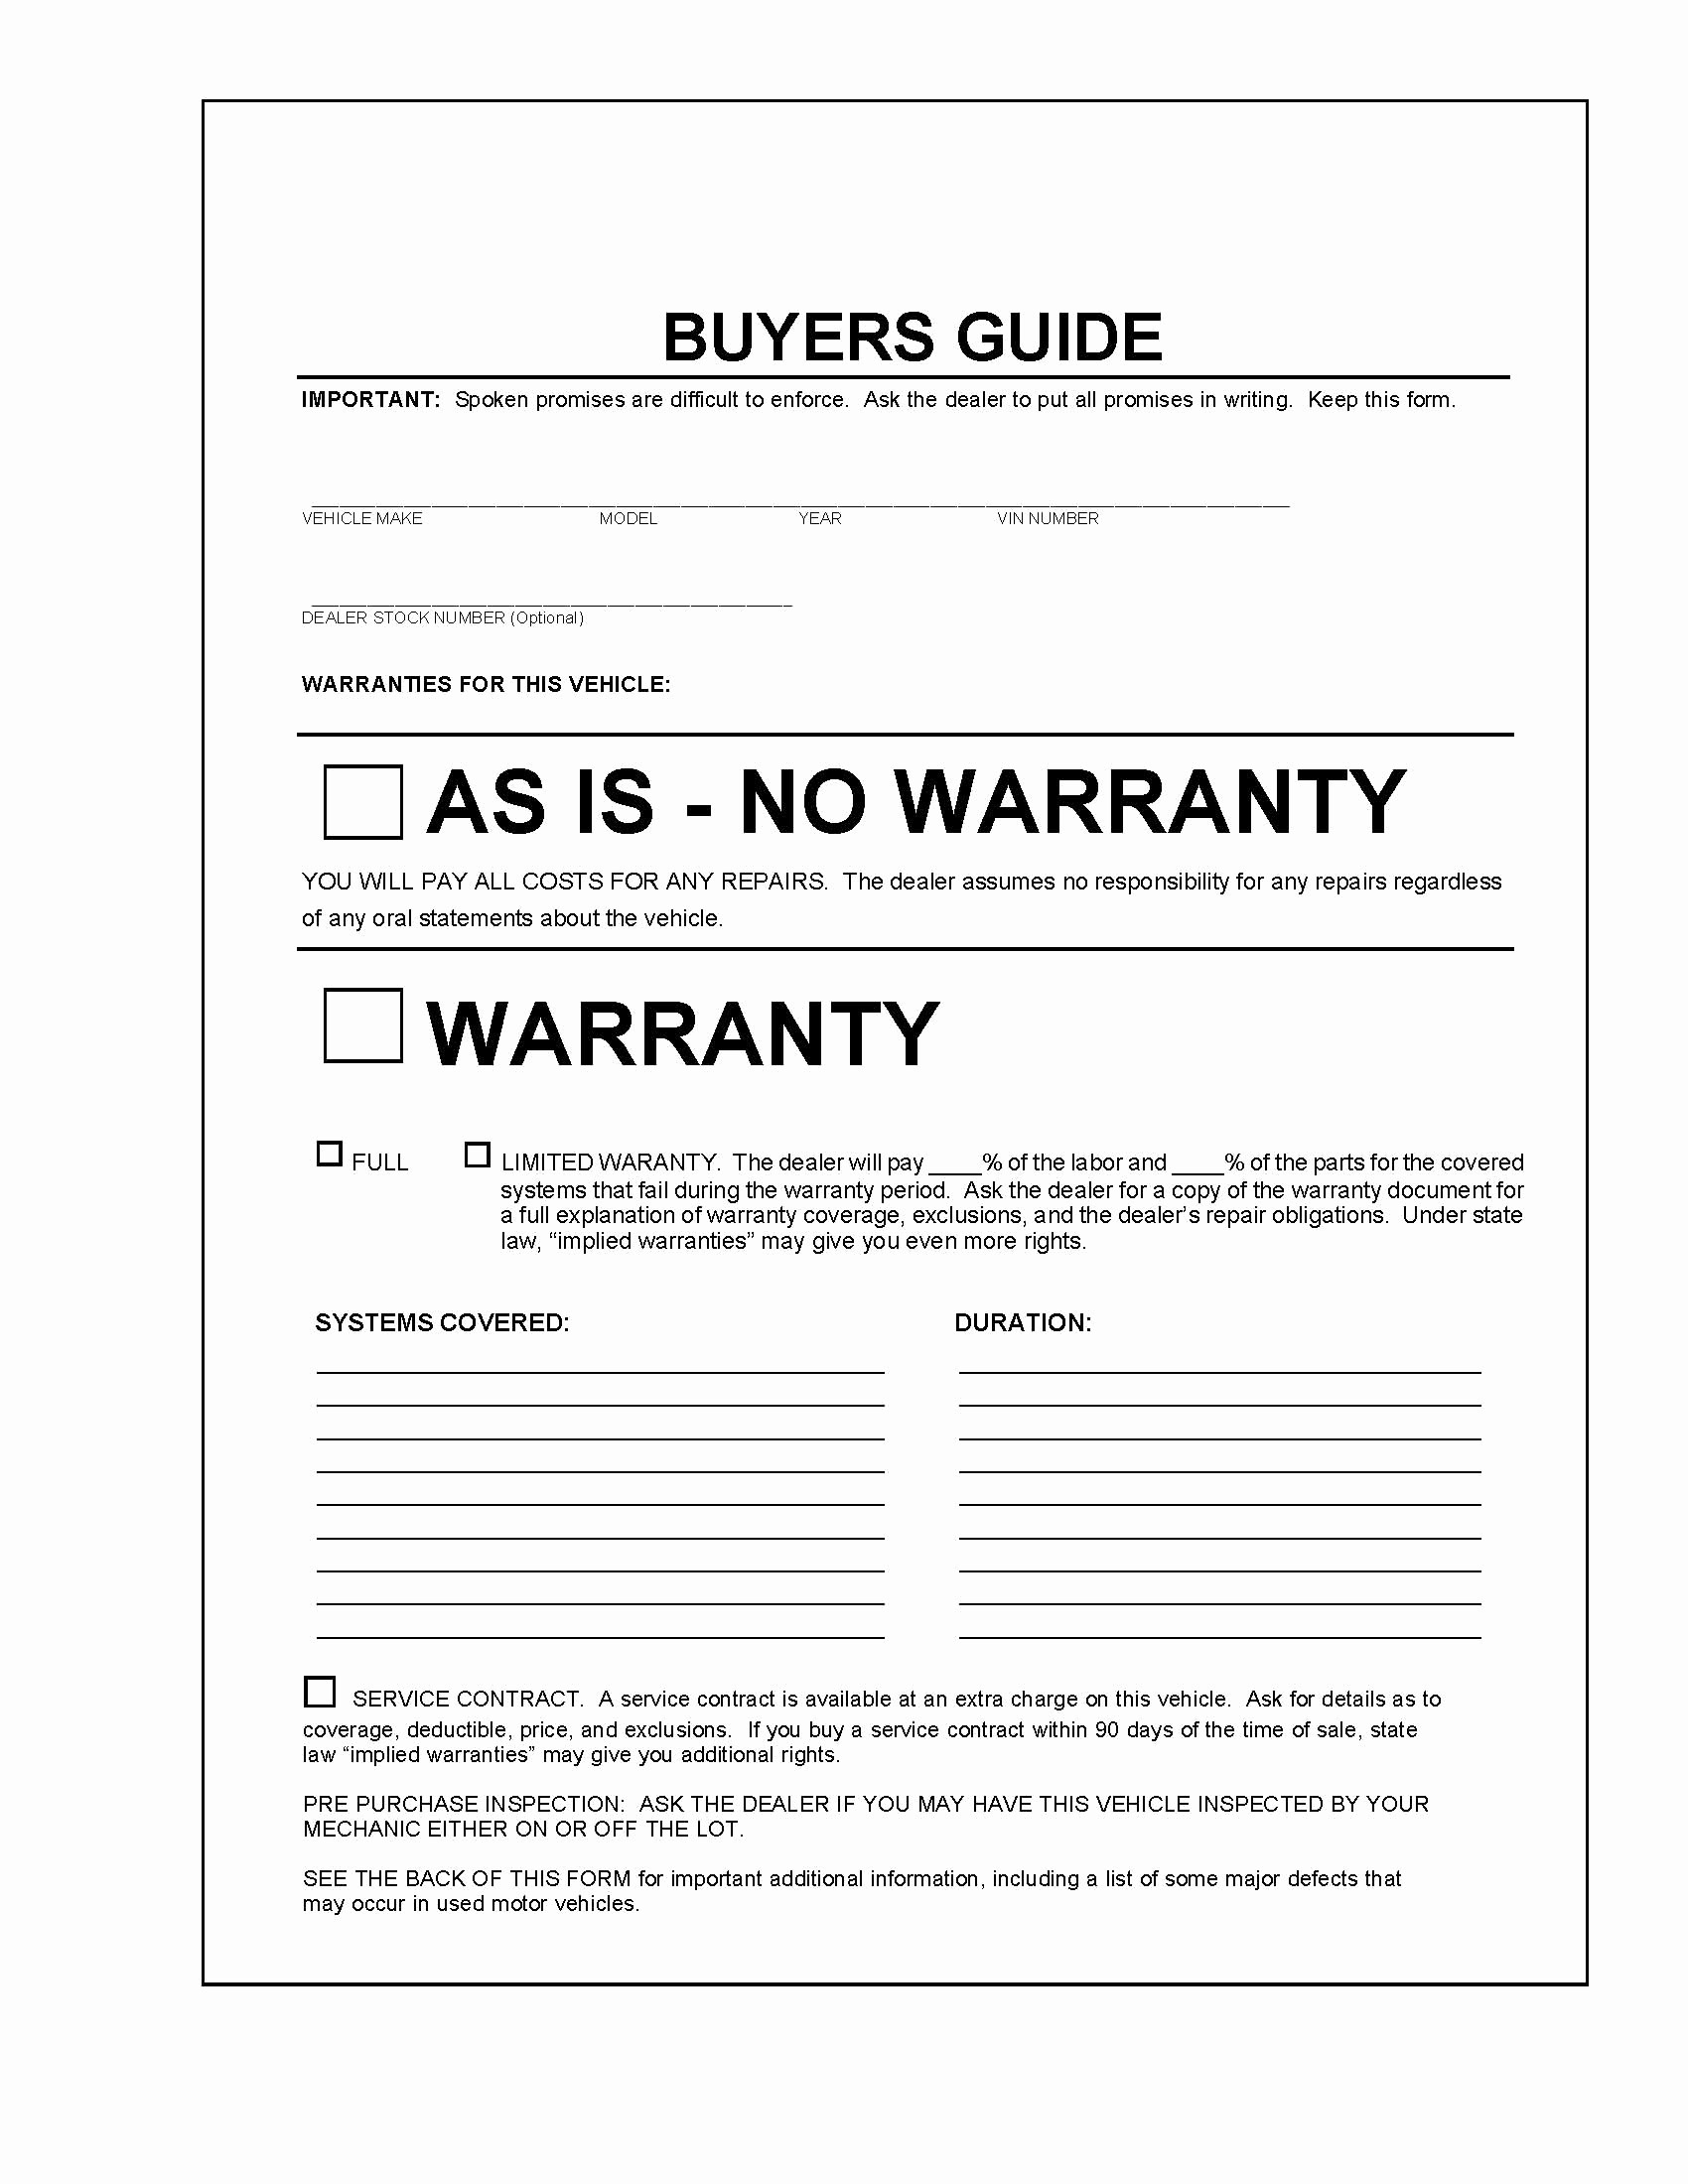 Vehicle sold as is Template Luxury Used Car Lemon Law Protection How to Lemon Law